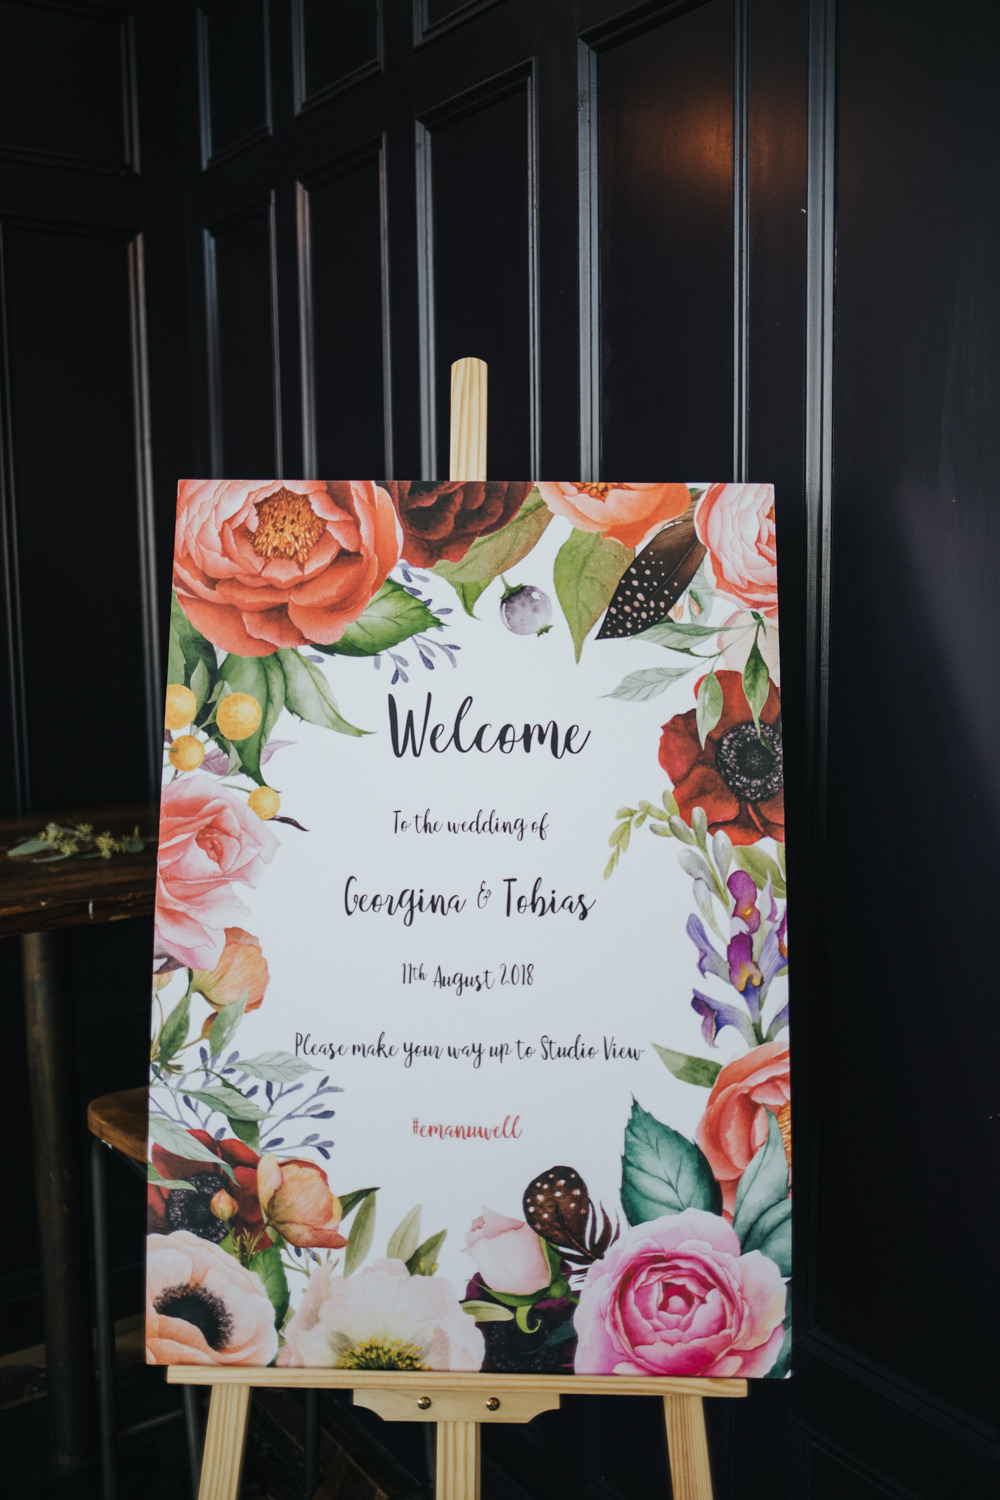 Floral Sign Signage Welcome Calligraphy Easel Wimborne House Wedding Eva Photography